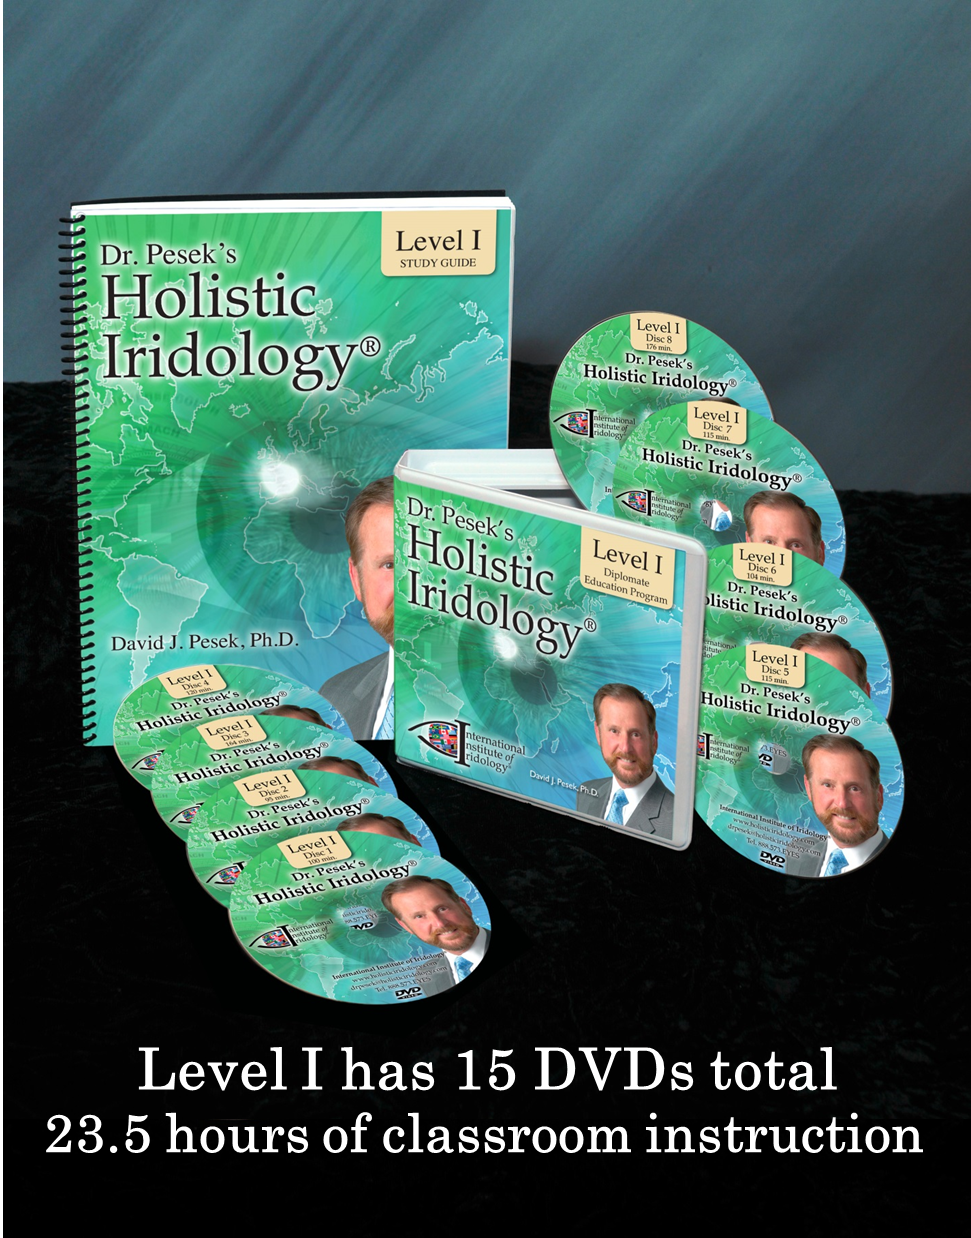 Dr. Pesek's Holistic Iridology Level I Seminar is 15 DVDs for 23.5 hours of total classroom instruction